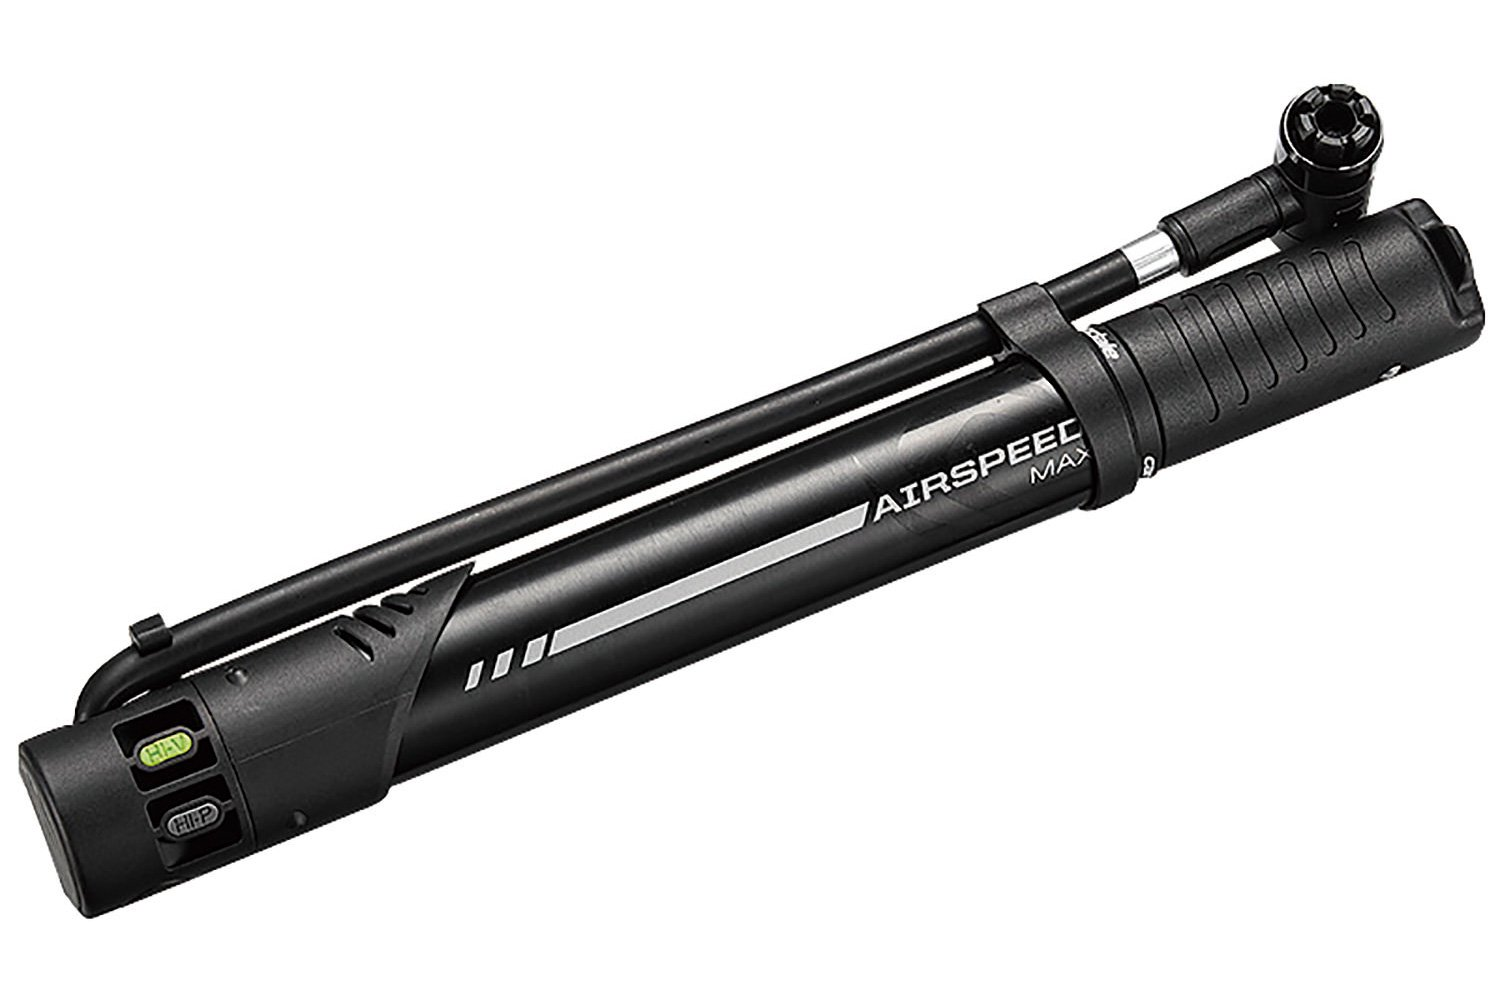 Cannondale Airspeed Max Bicycle Mini Pump - CU4051MX01